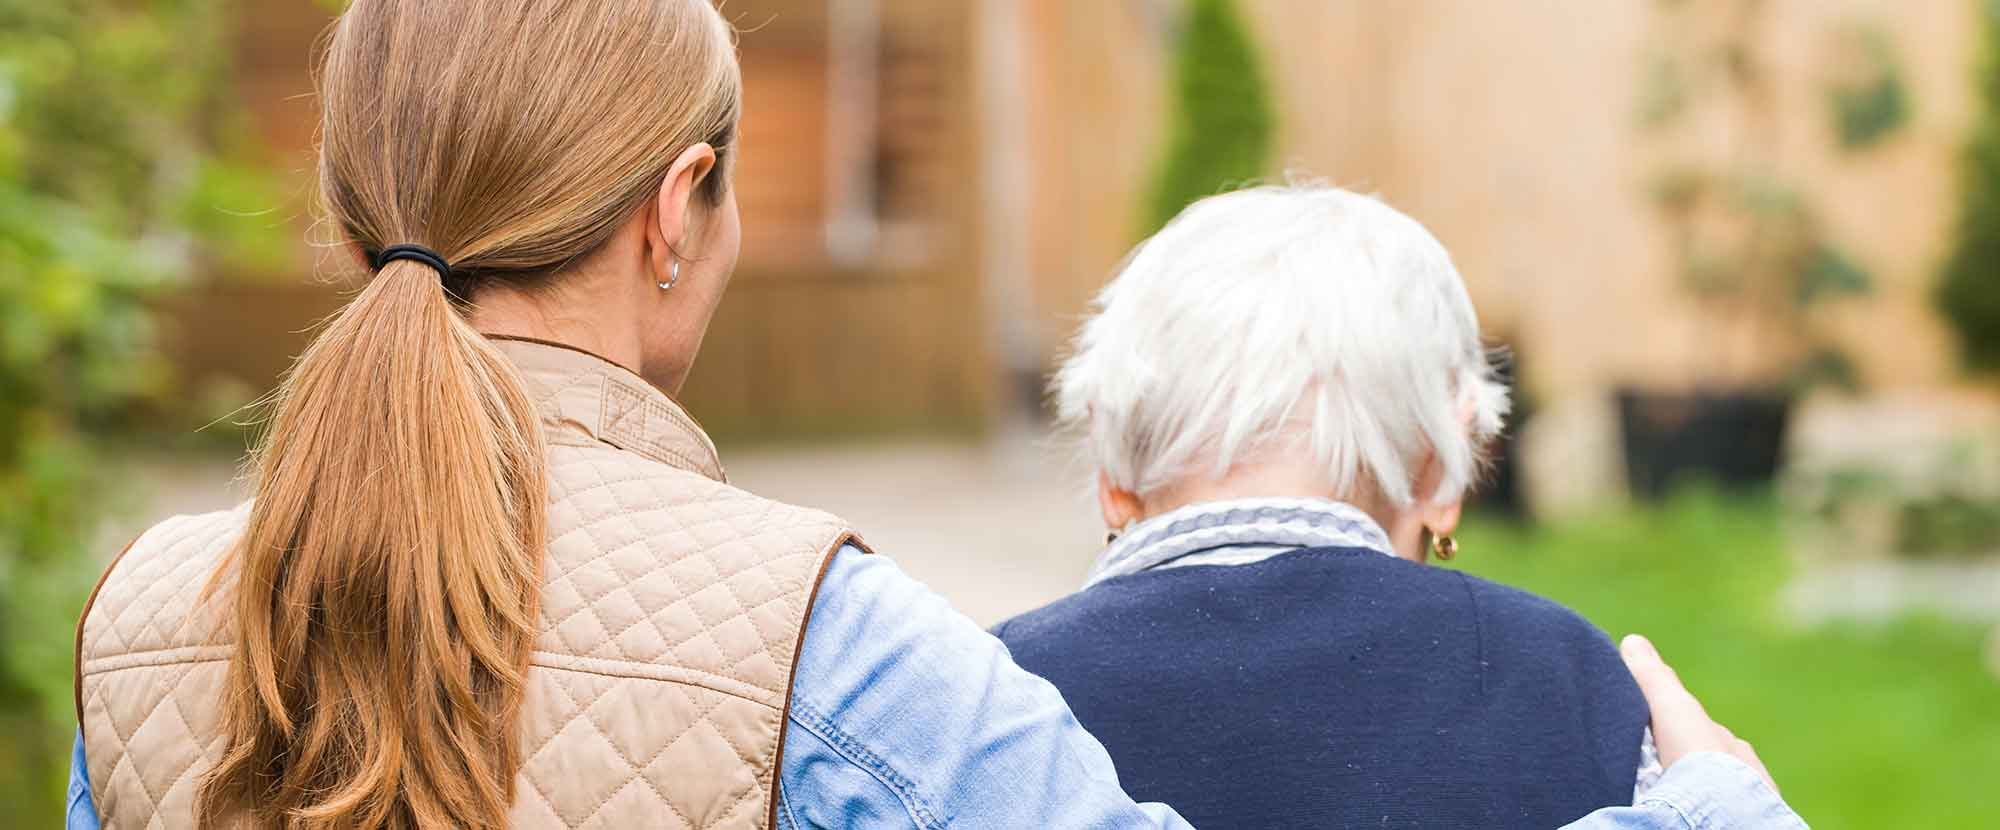 New research suggests that half of women will be caring for someone by the age of 46.